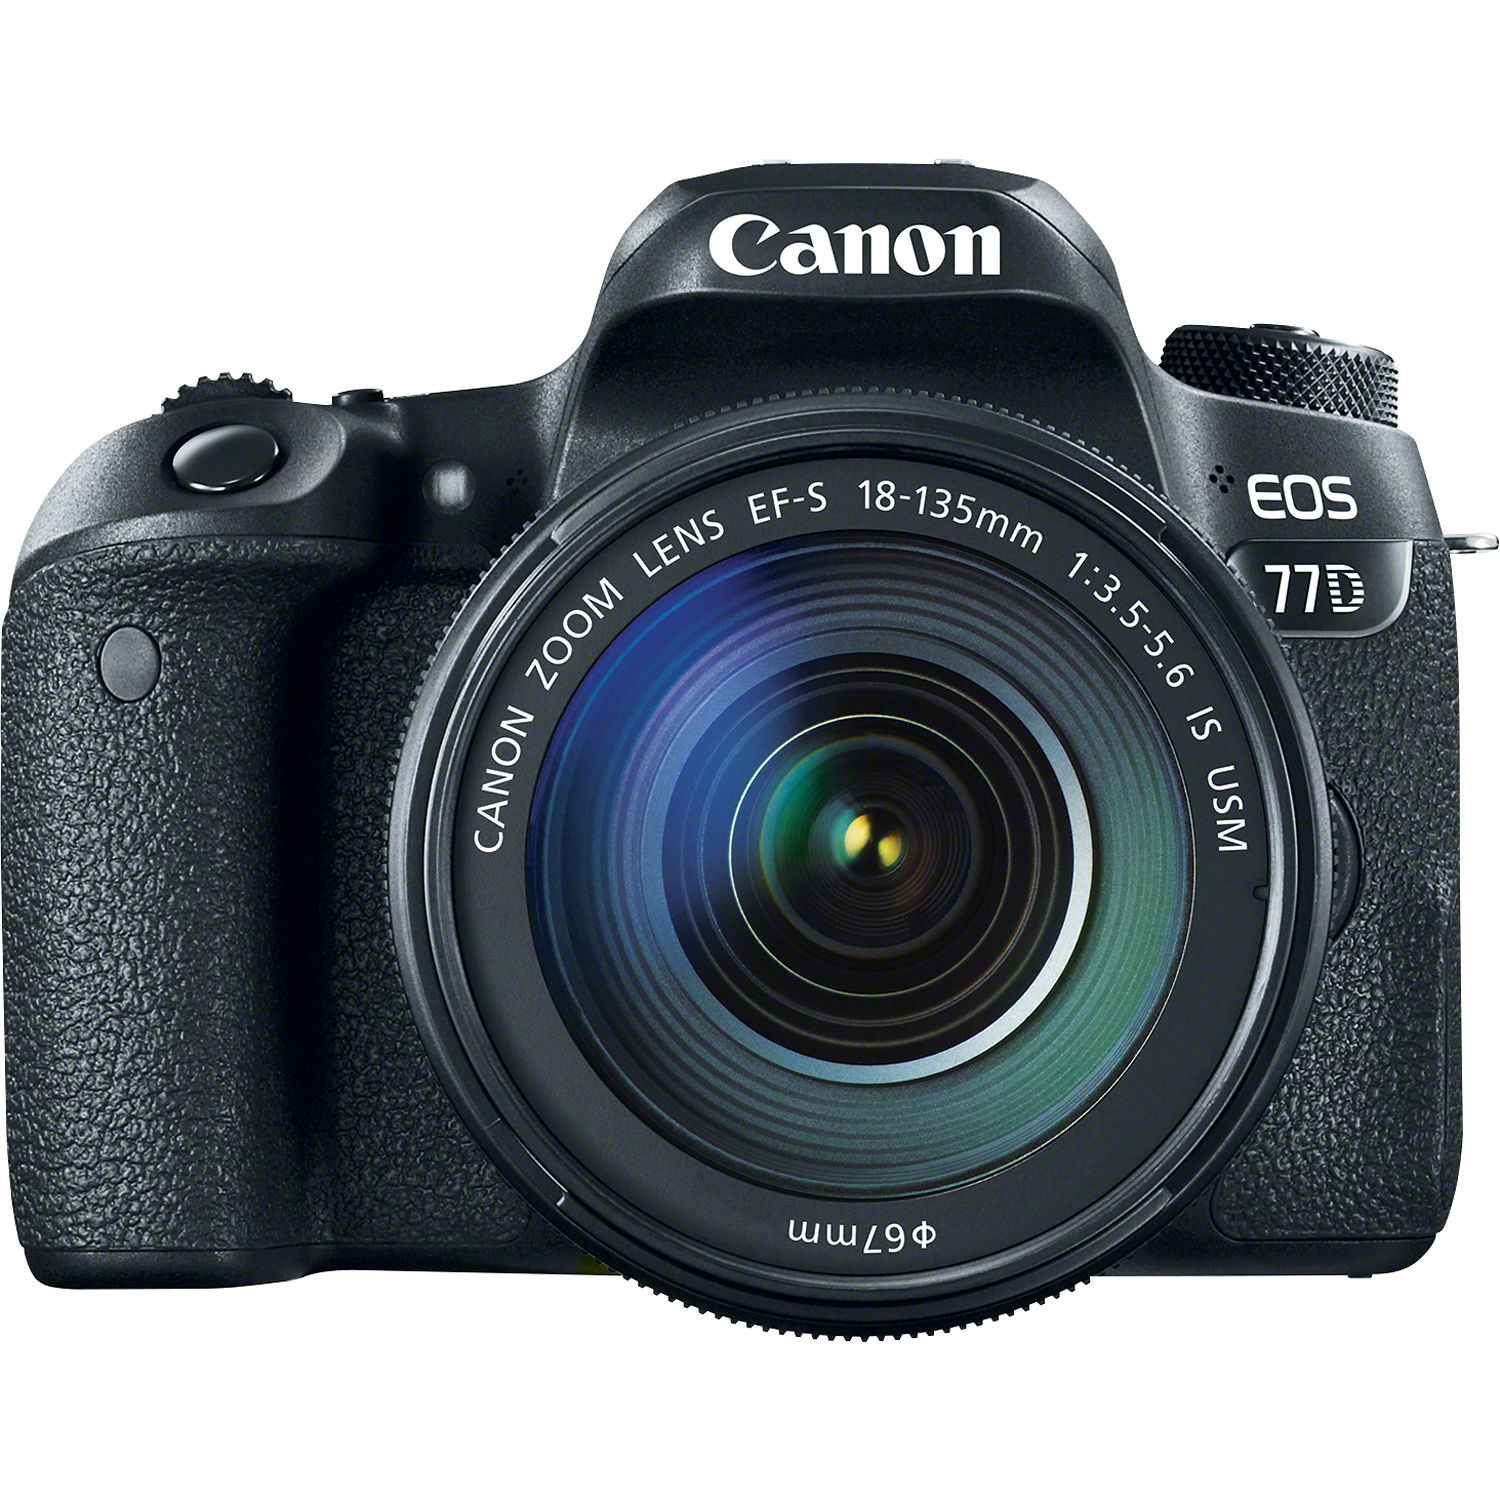 Image for Canon EOS 77D DSLR Camera with 18-135mm USM Lens from Circuit City